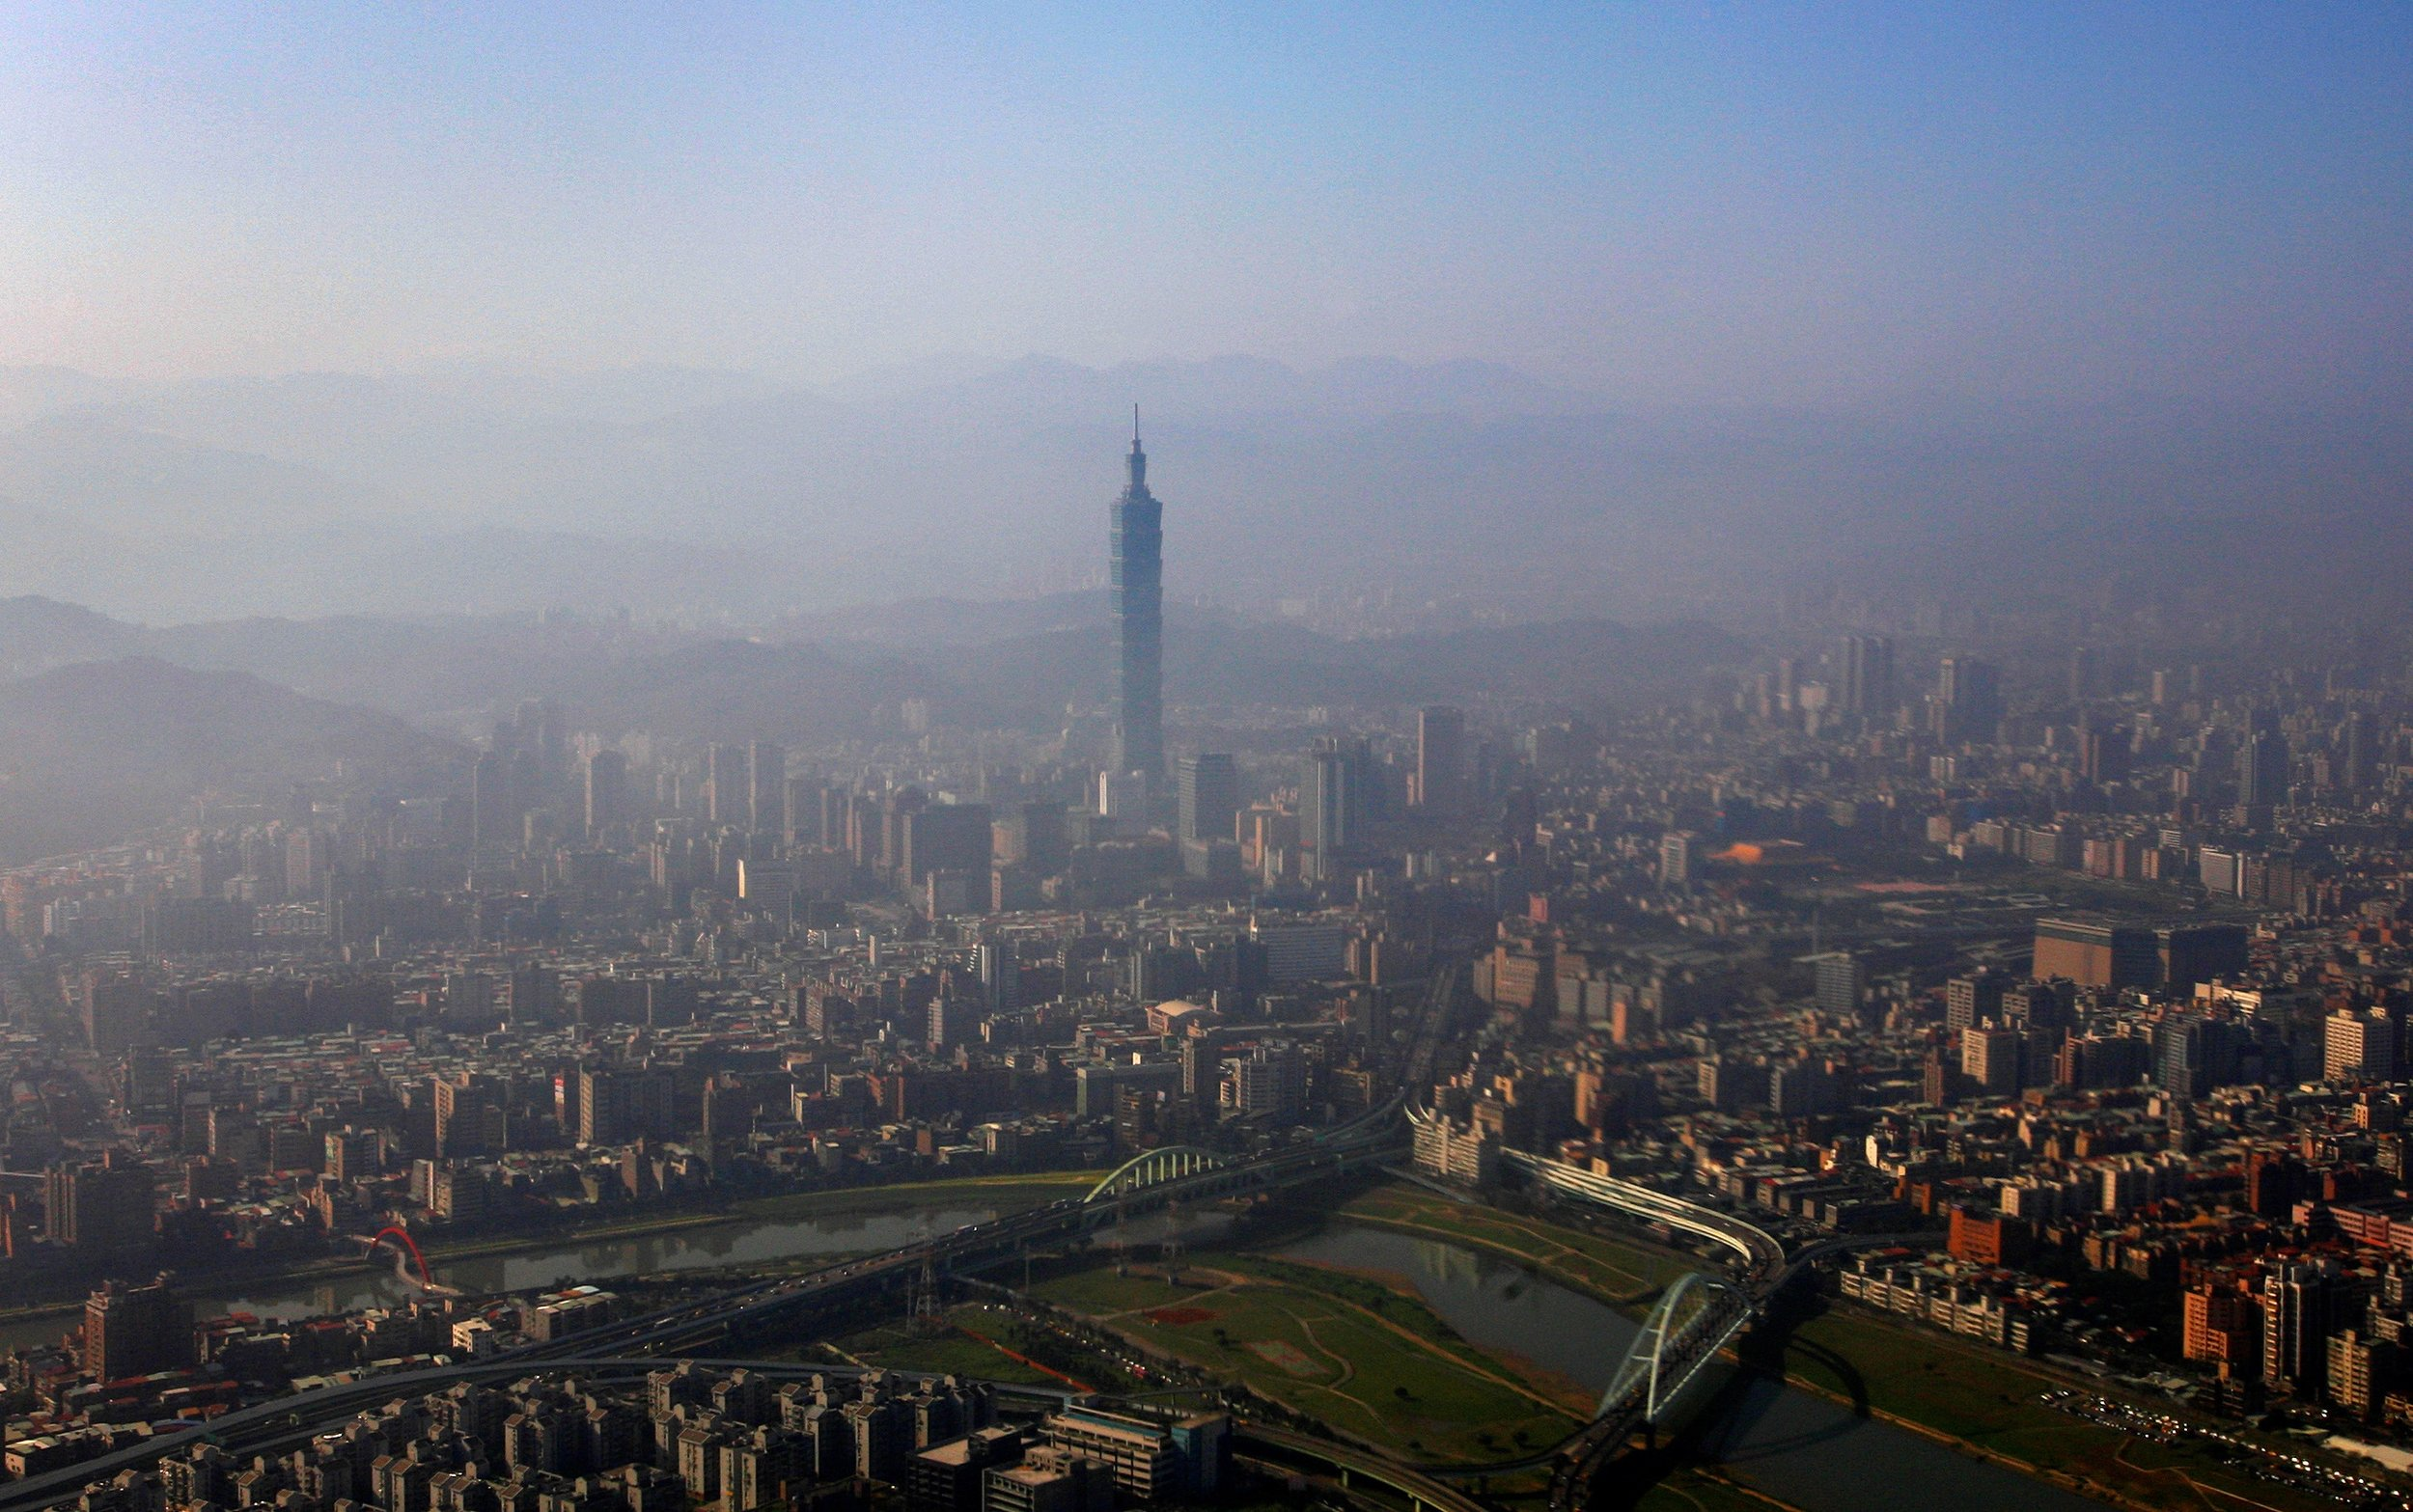 Taipei City. Photo by Reuters/TPG